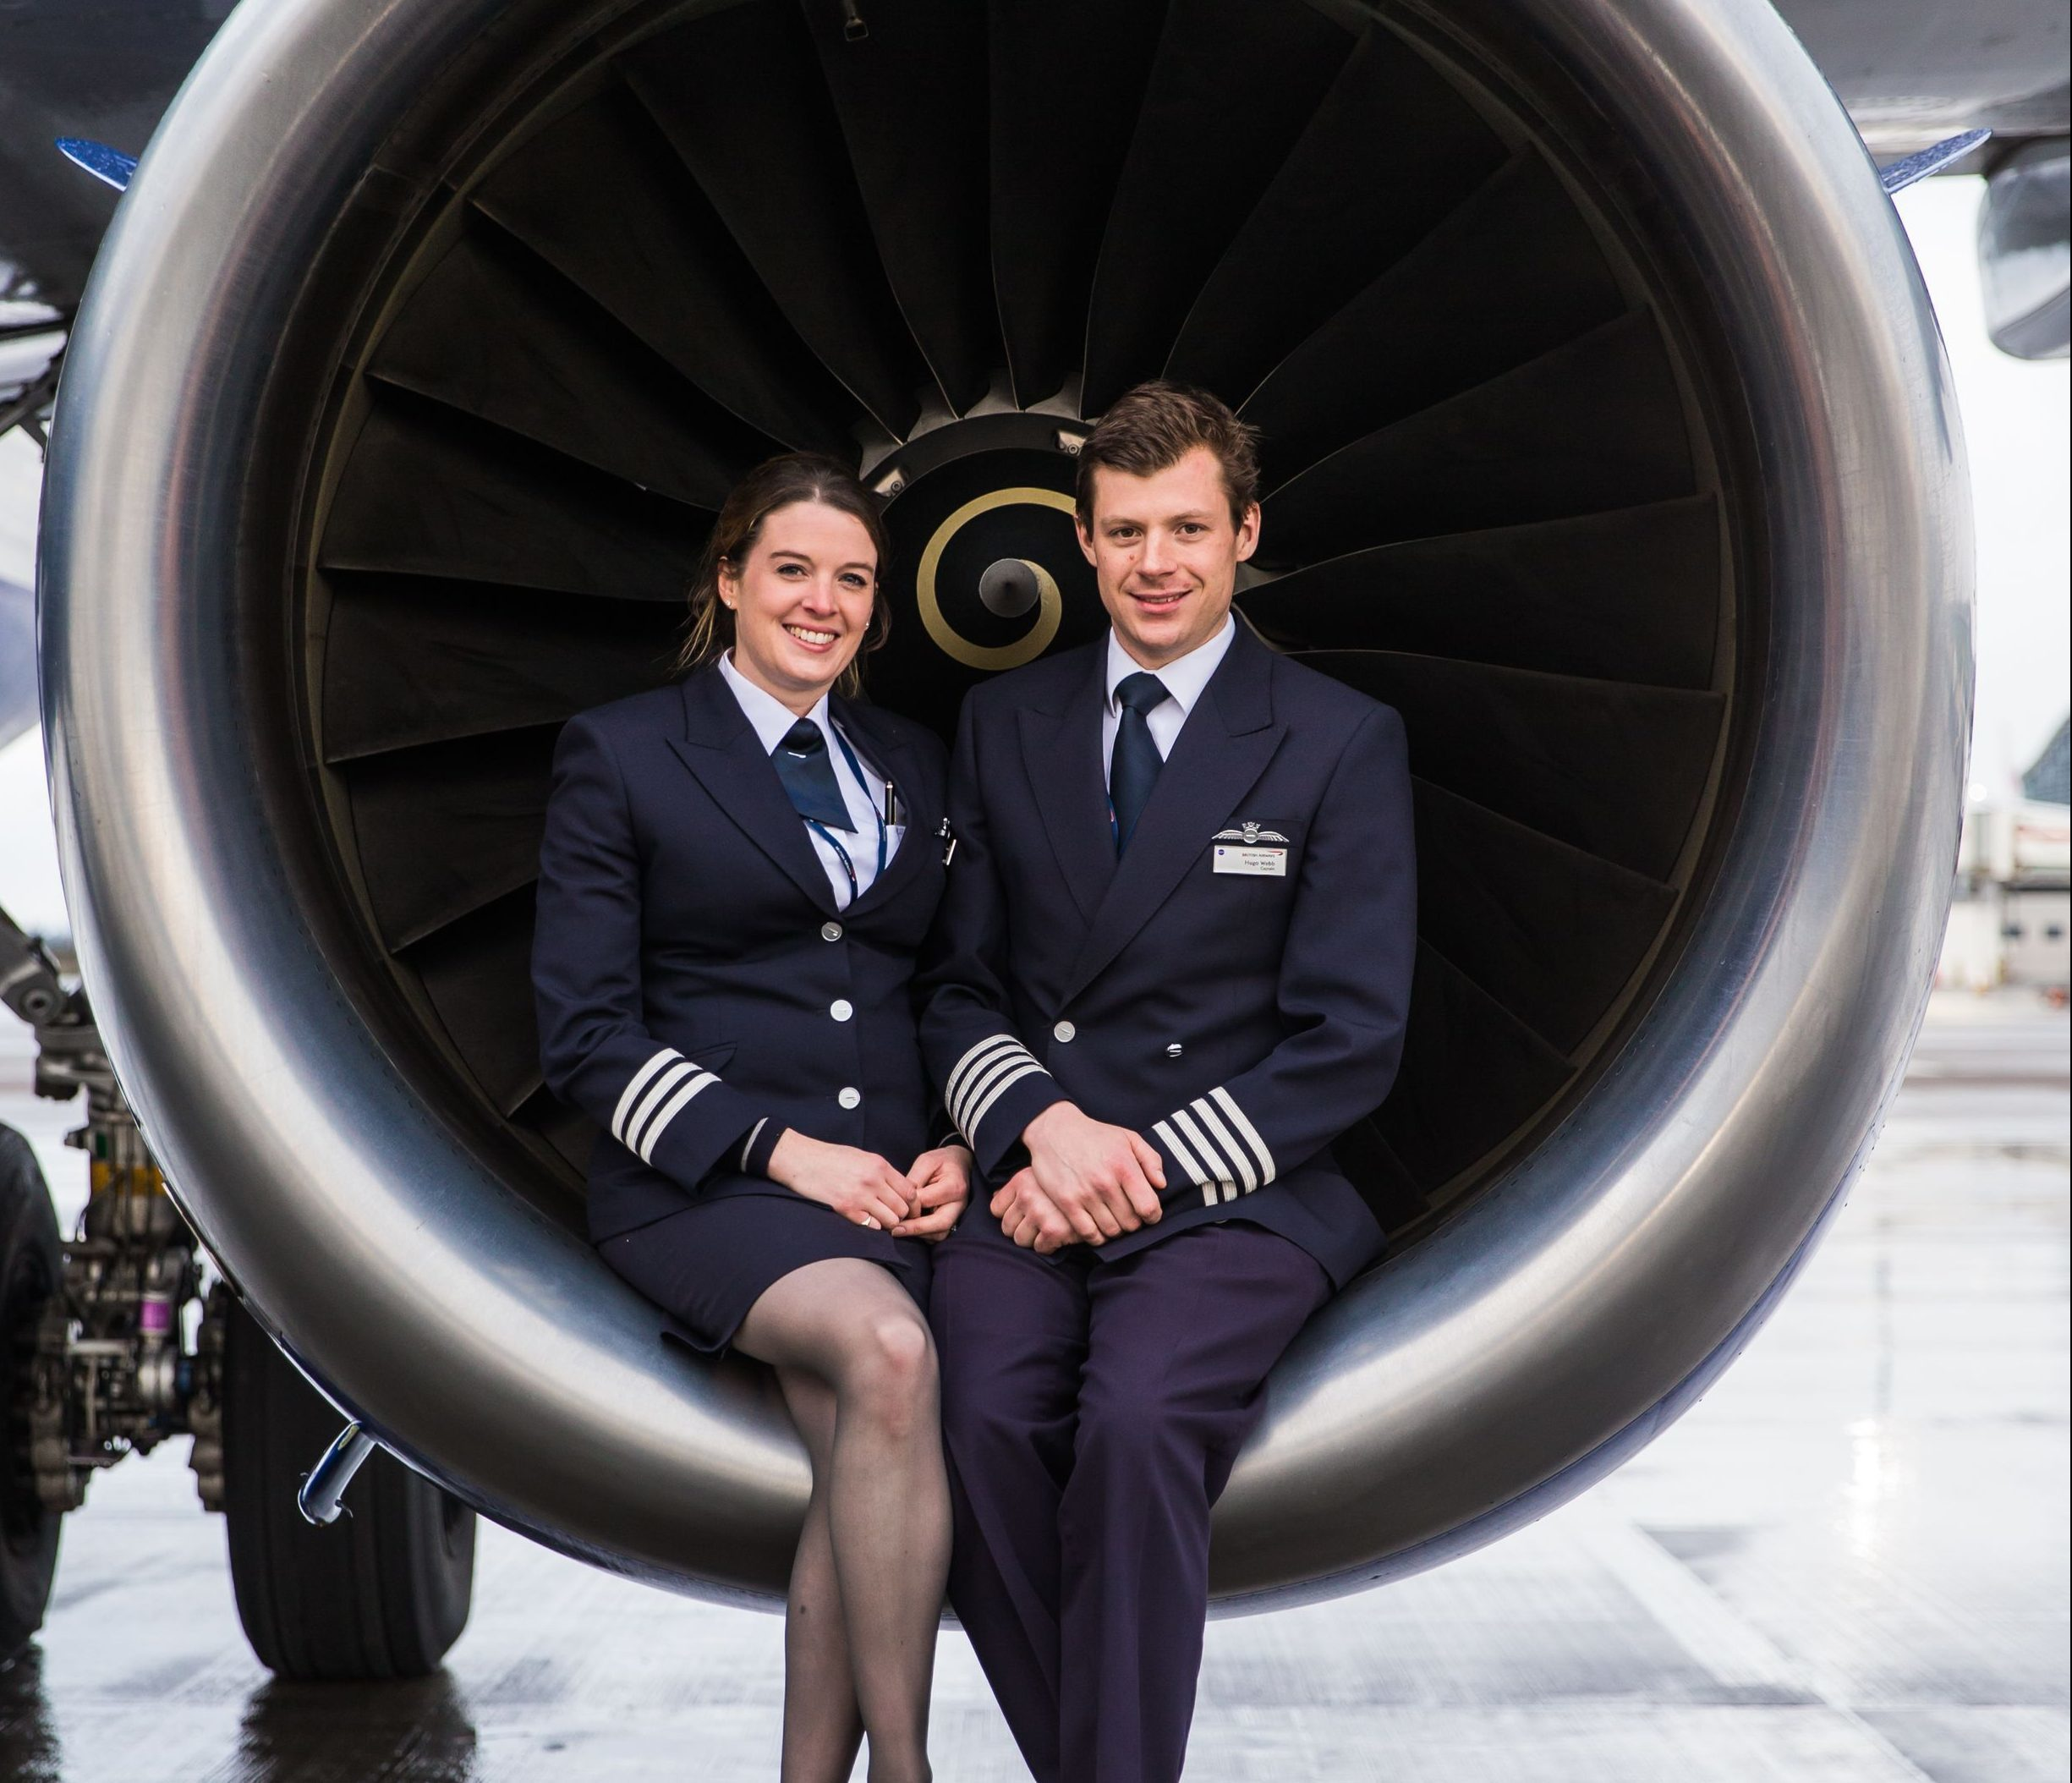 Married pilots tell of great fun they have flying BA planes together